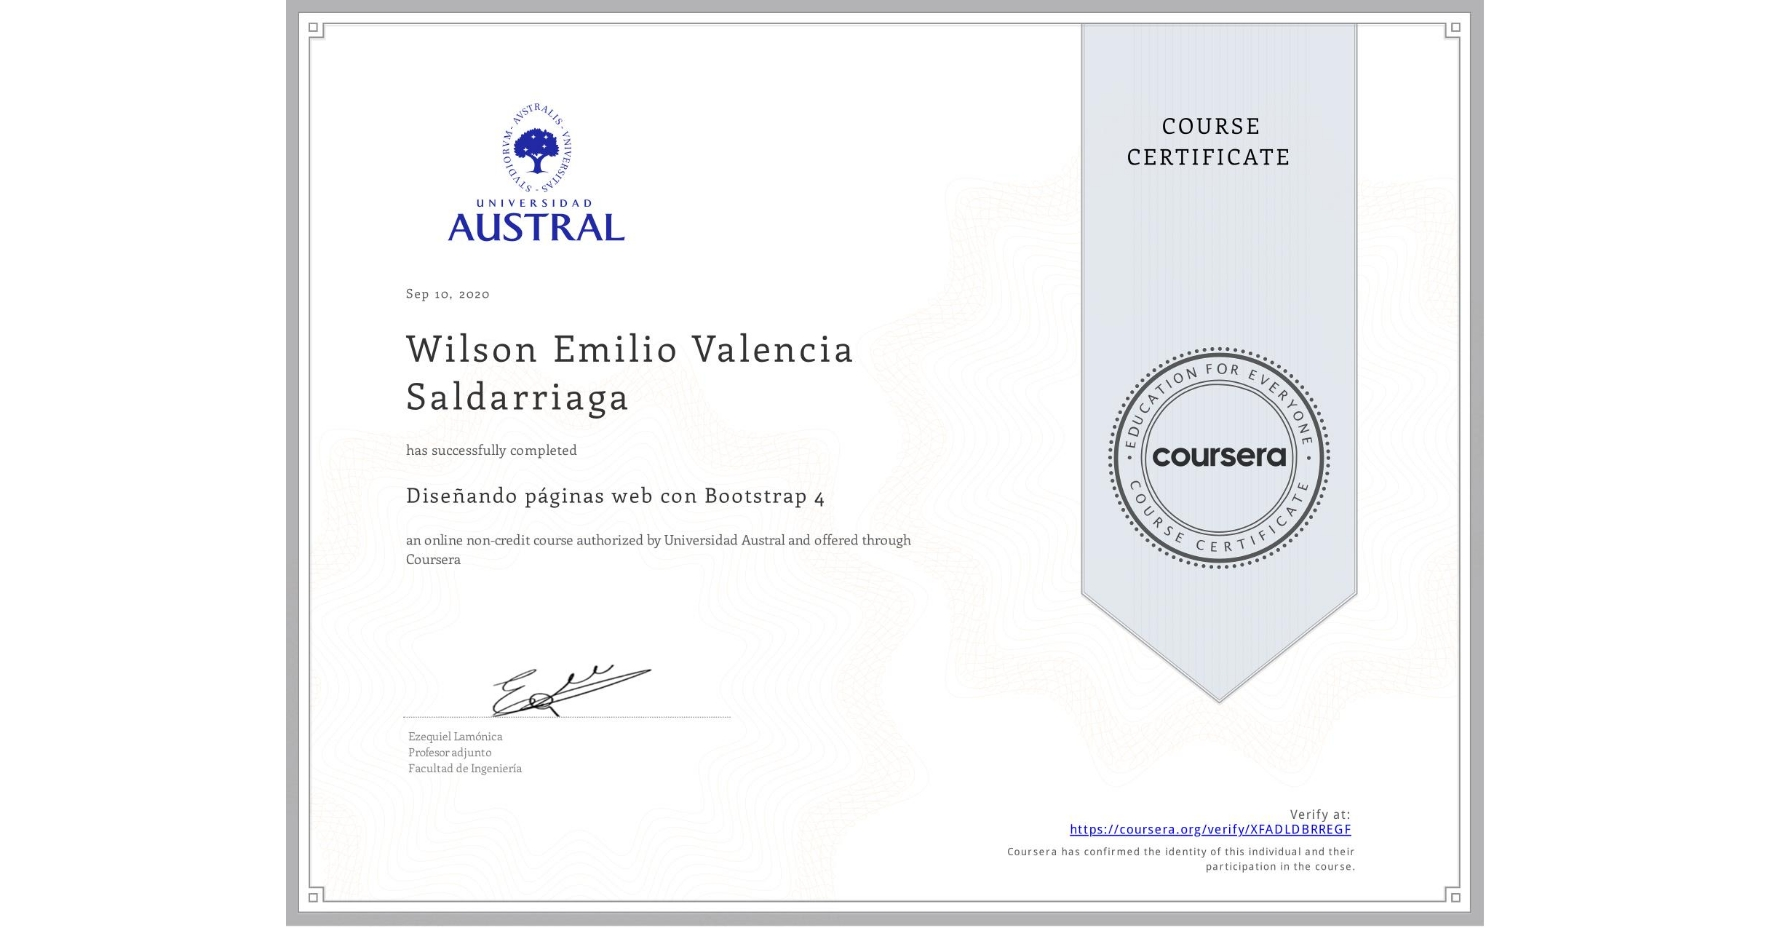 View certificate for Wilson Emilio Valencia Saldarriaga, Diseñando páginas web con Bootstrap 4, an online non-credit course authorized by Universidad Austral and offered through Coursera